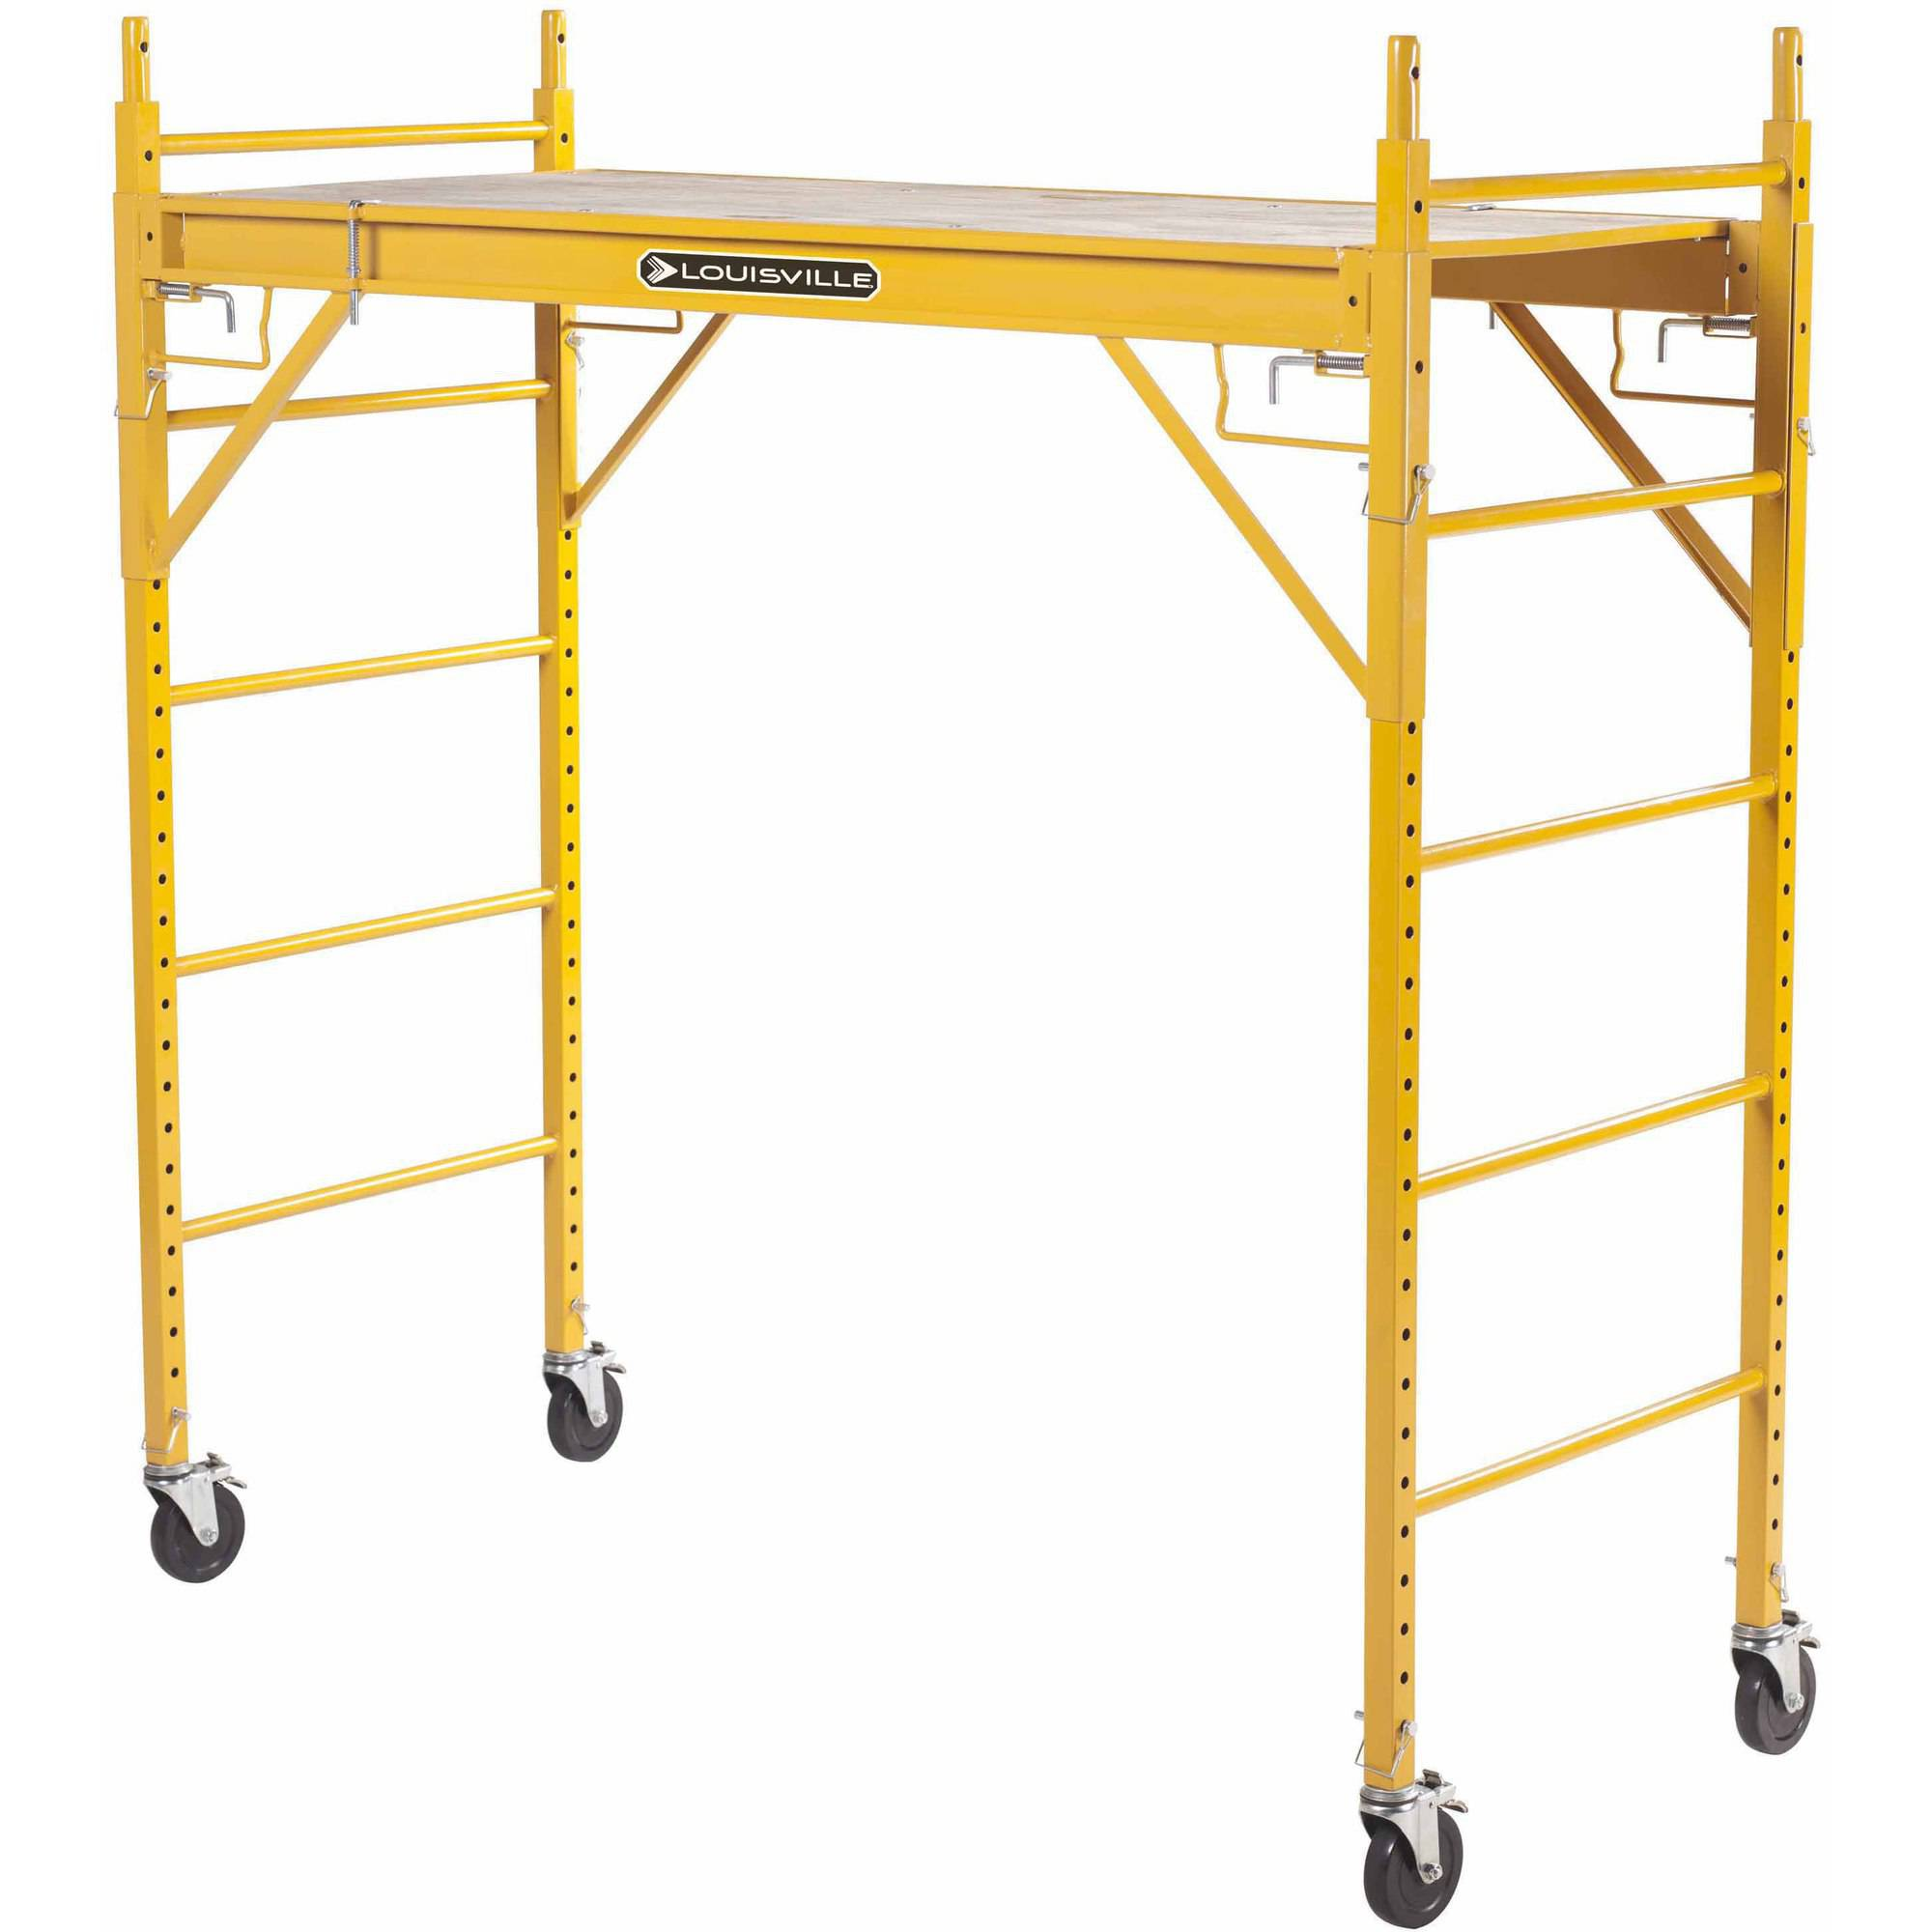 Louisville Ladder 6' x 6' Steel Rolling Scaffold, 1000 lbs Duty Rated by Louisville Ladder